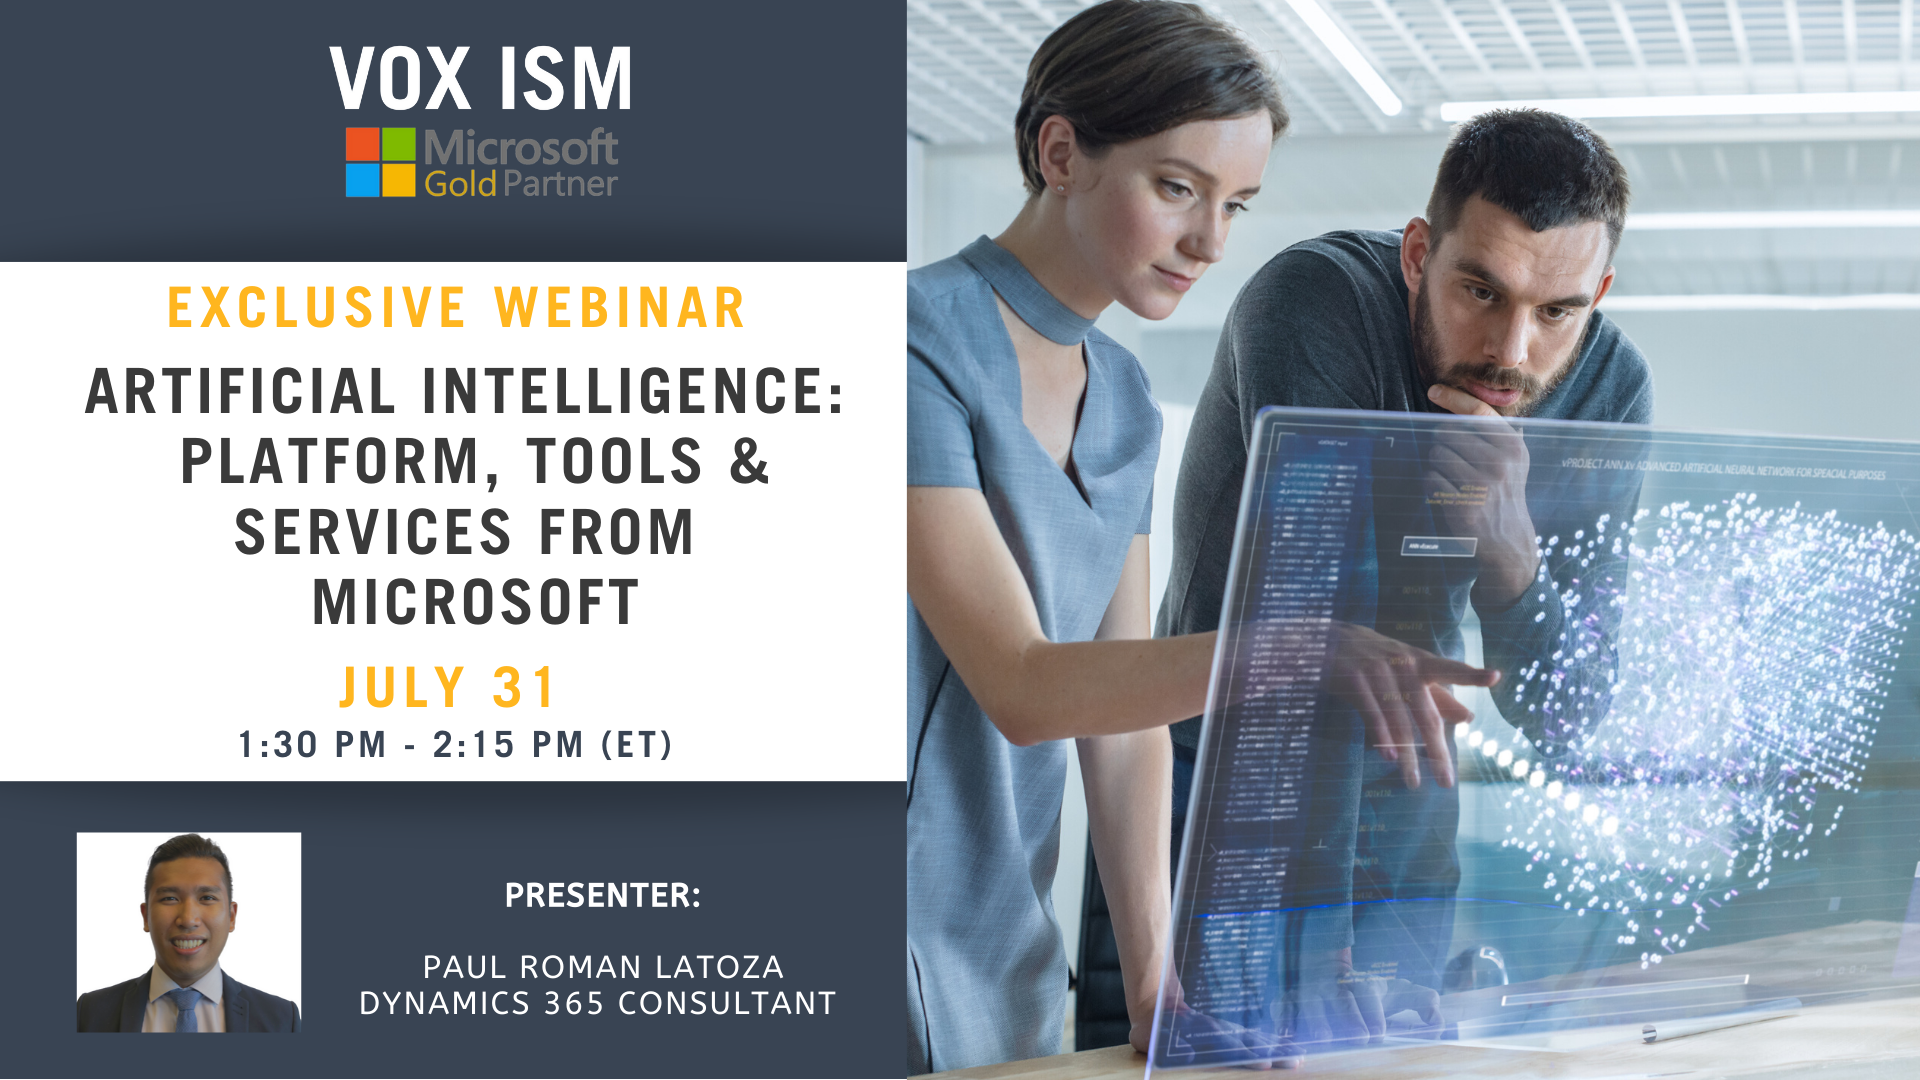 Artificial Intelligence: Platform, Tools & Services from Microsoft - July 31 - Webinar VOX ISM